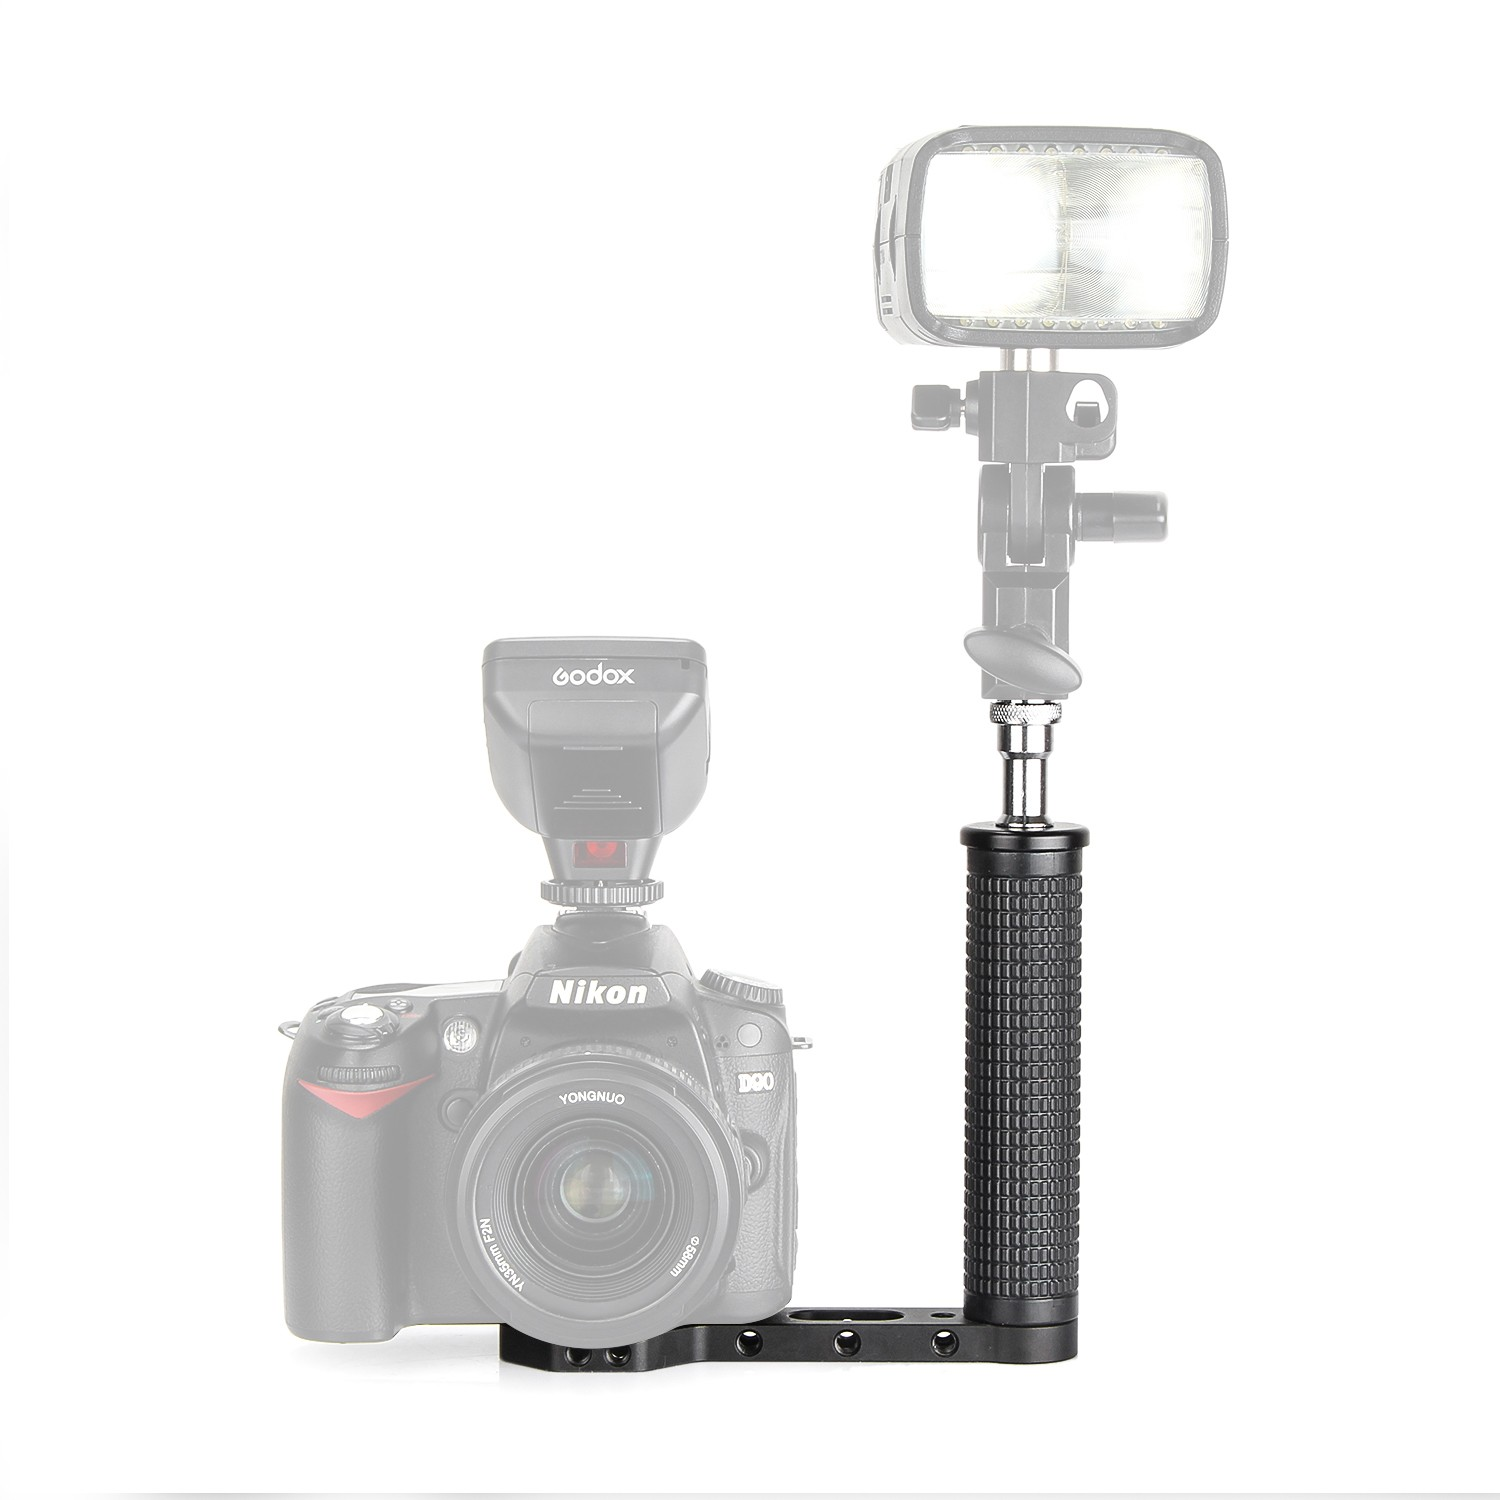 On Camera Flash Bracket Grip for Godox AD200On Camera Flash Bracket Grip for Godox AD200